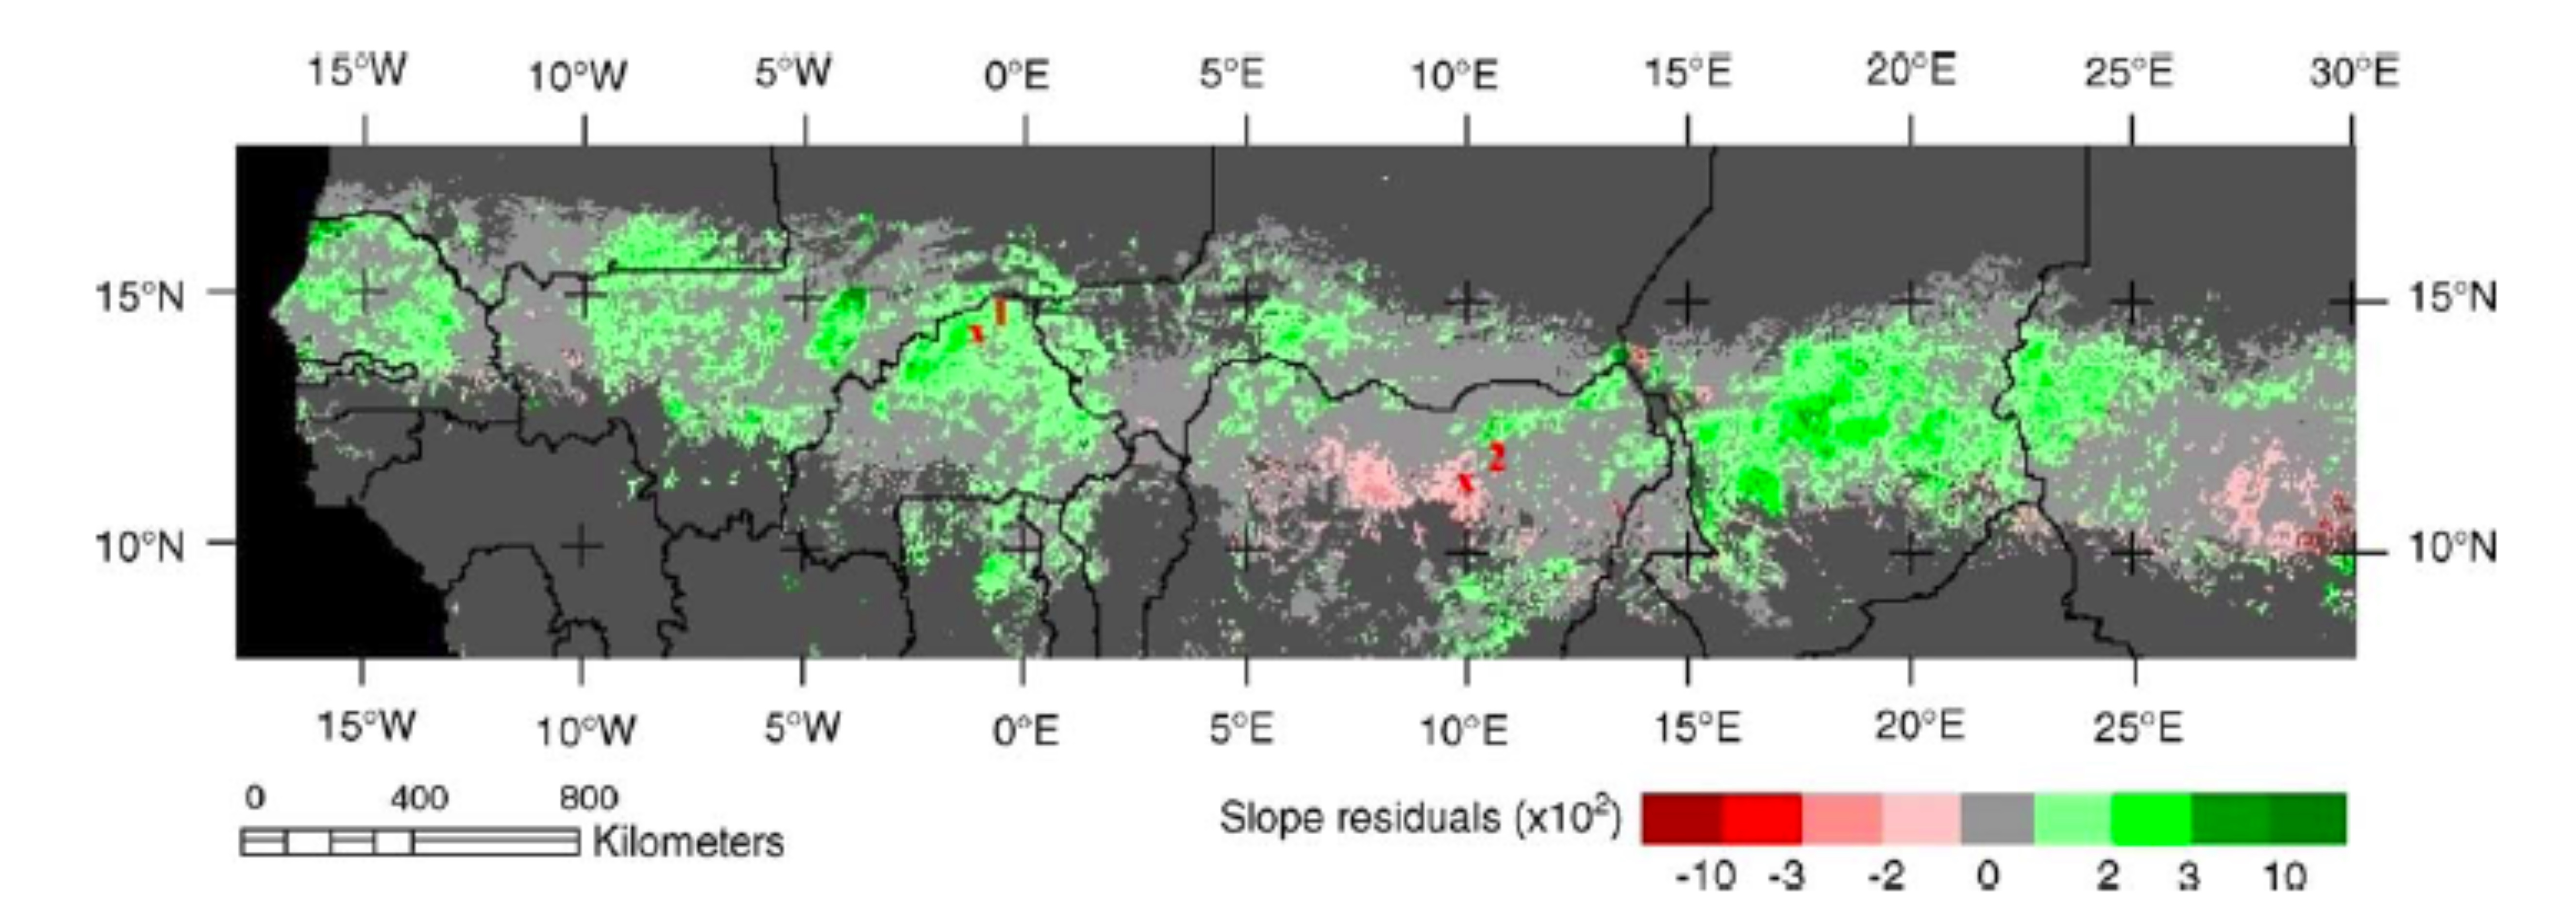 Greening (green) and browning (red) of the West African Sahel - Source: Herrmann, Anyamba and Tucker, 2005